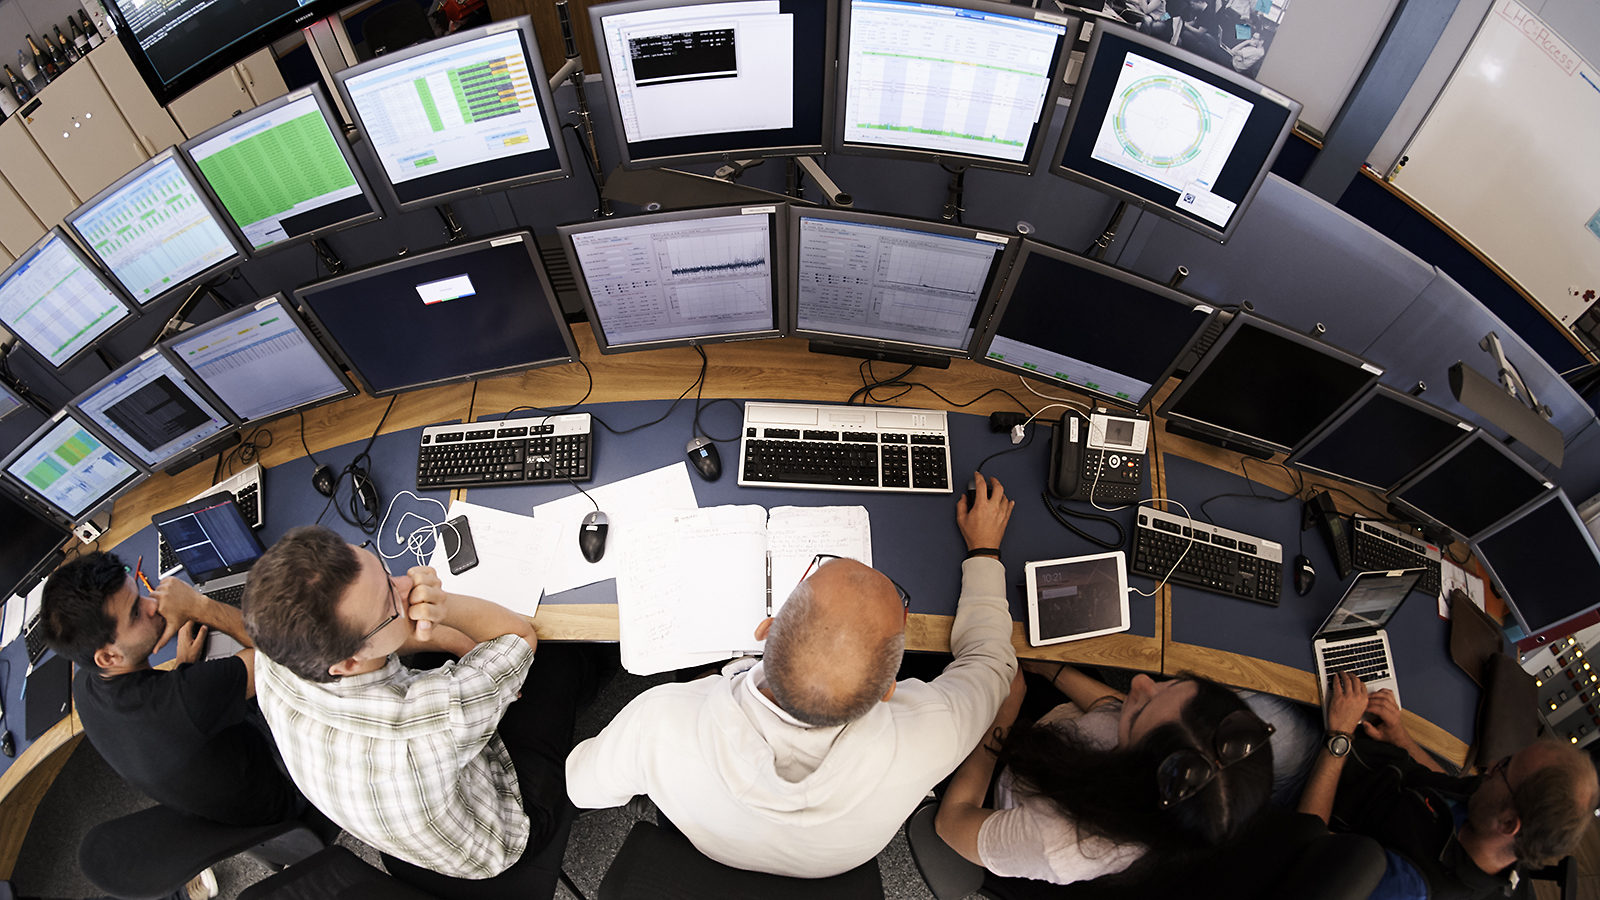 Overhead view of people sitting in front of two rows of computer screens